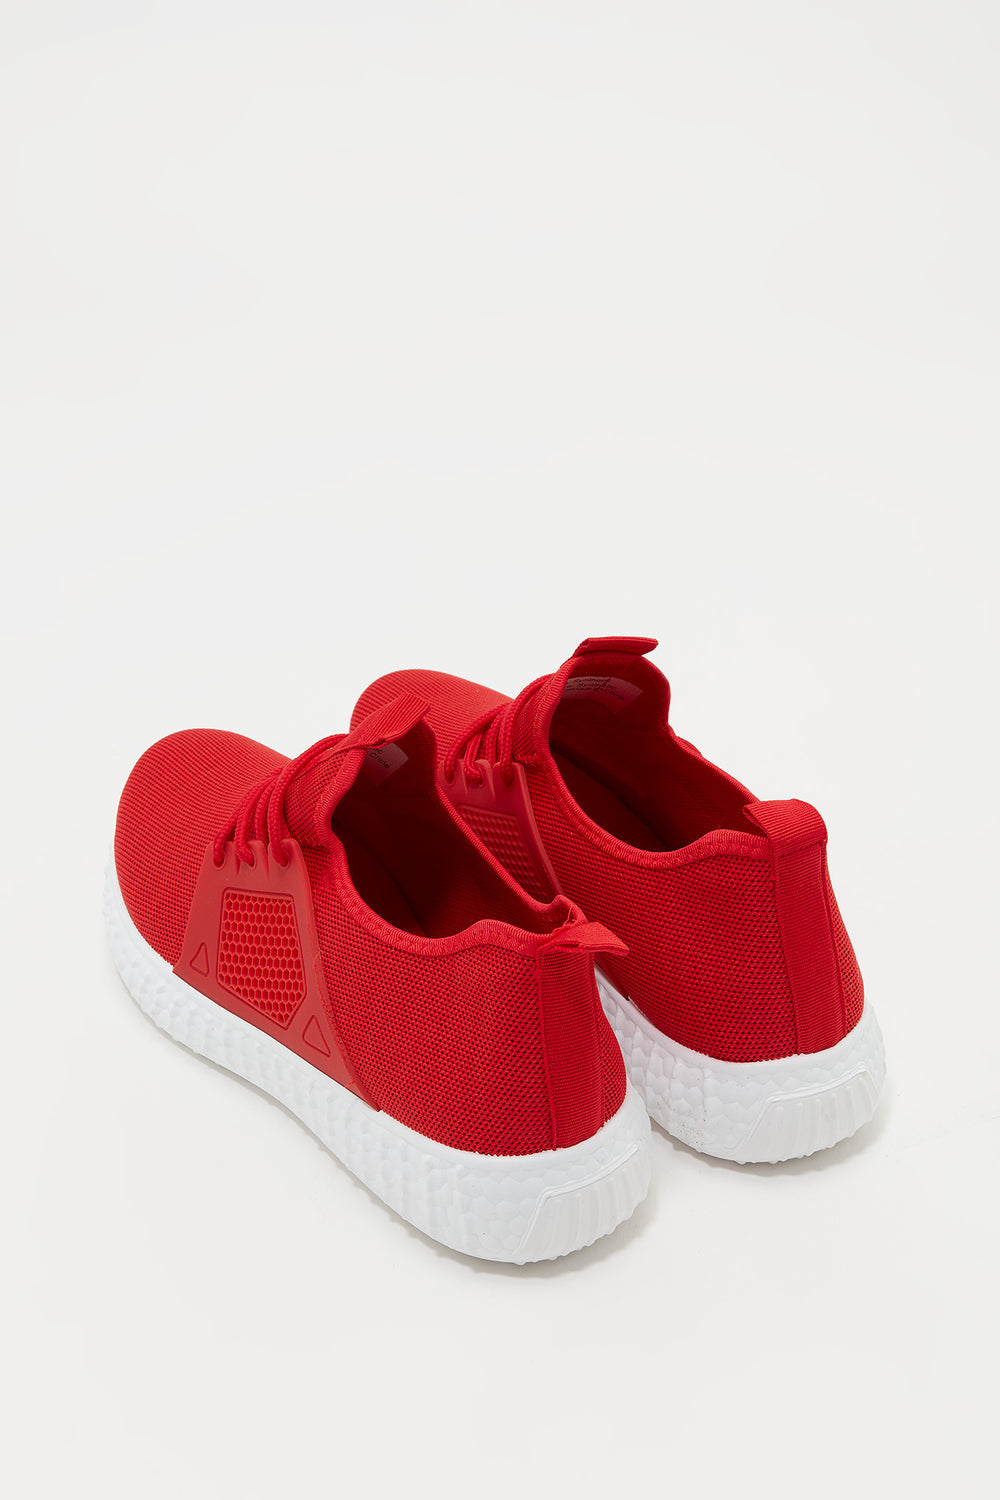 Knit Lace-Up Active Sneaker Red